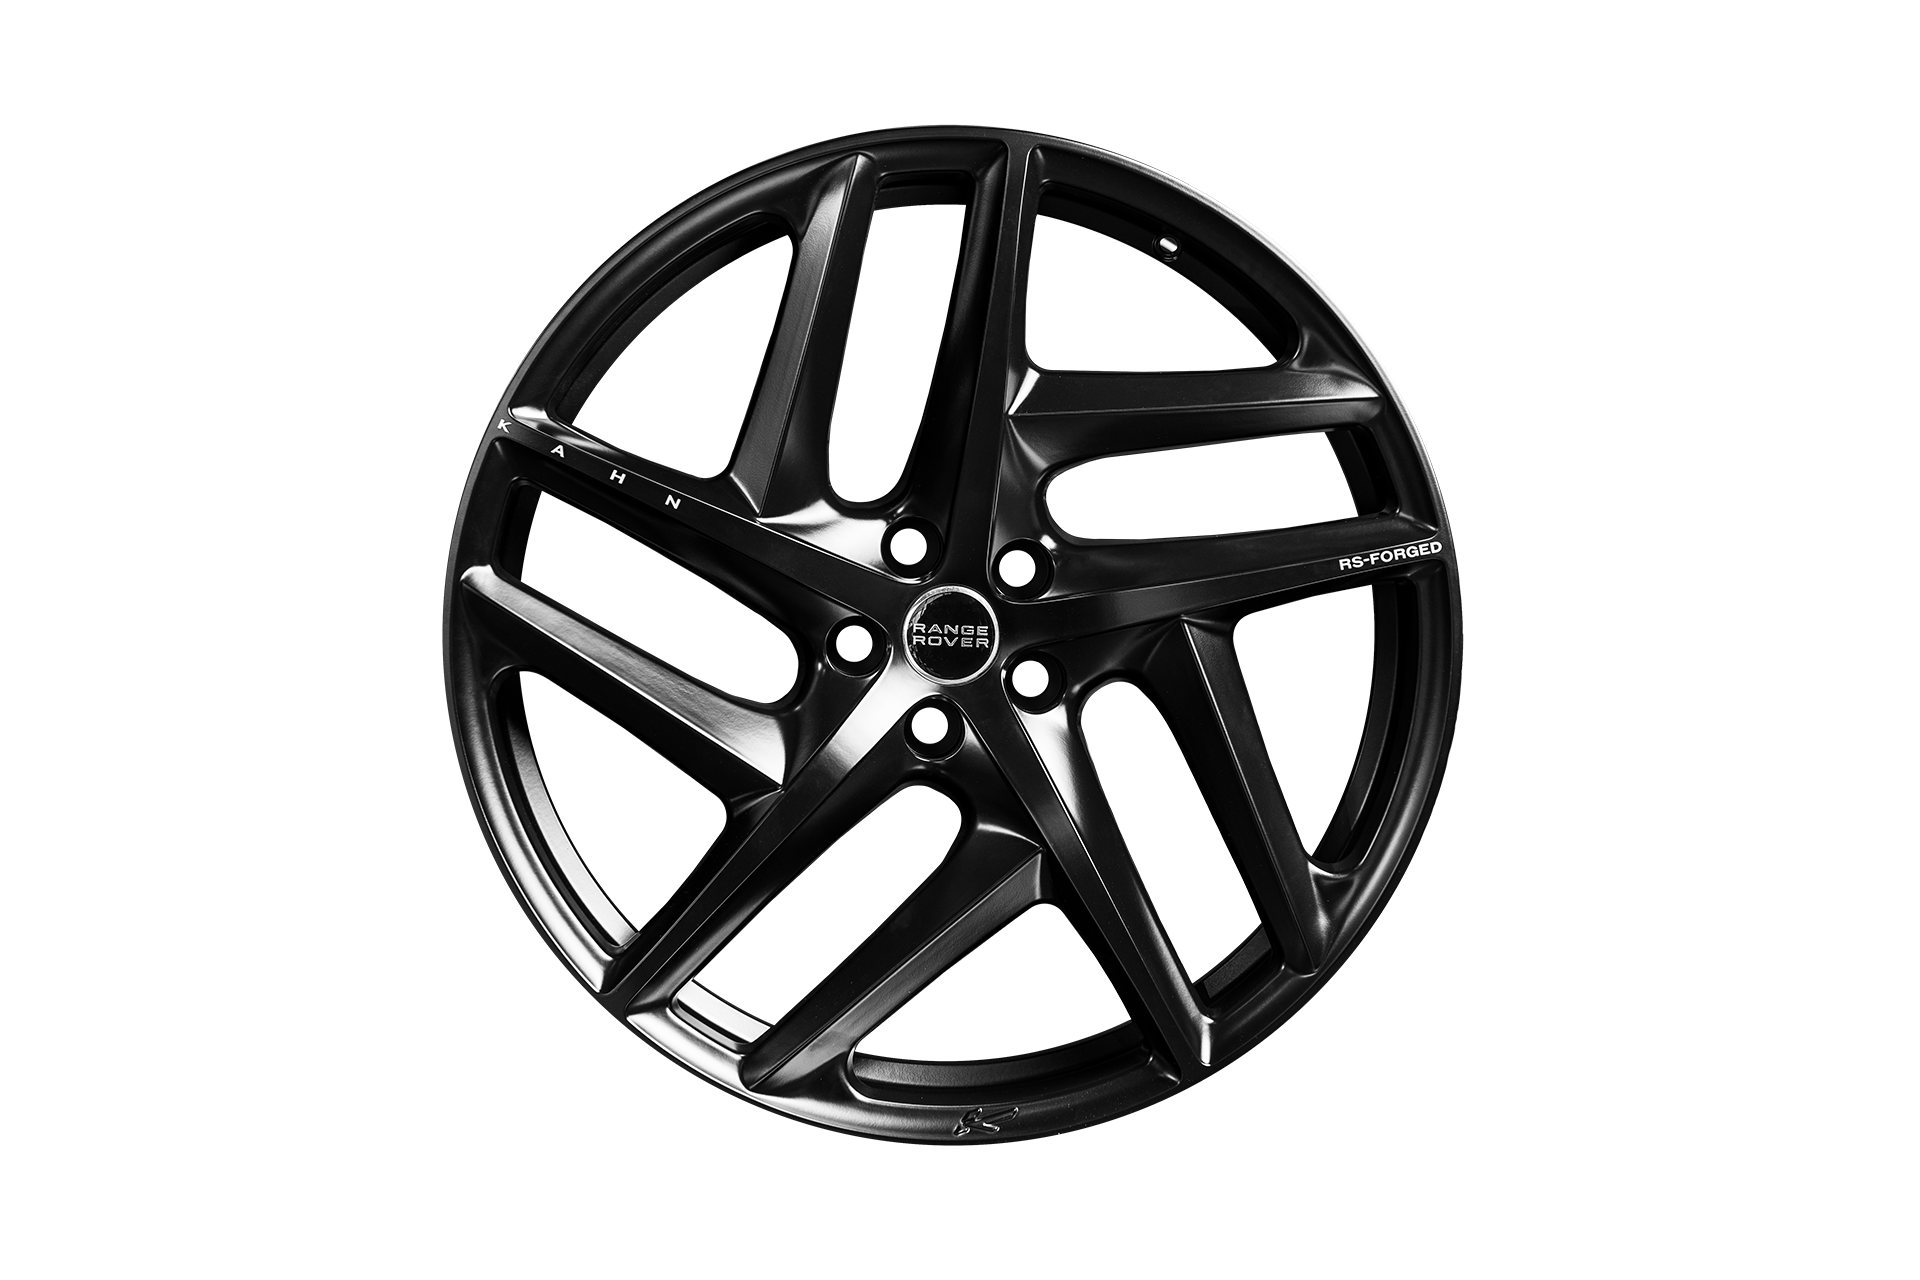 Range Rover Sport (2013-2018) Type 52 RS-Forged Alloy Wheels